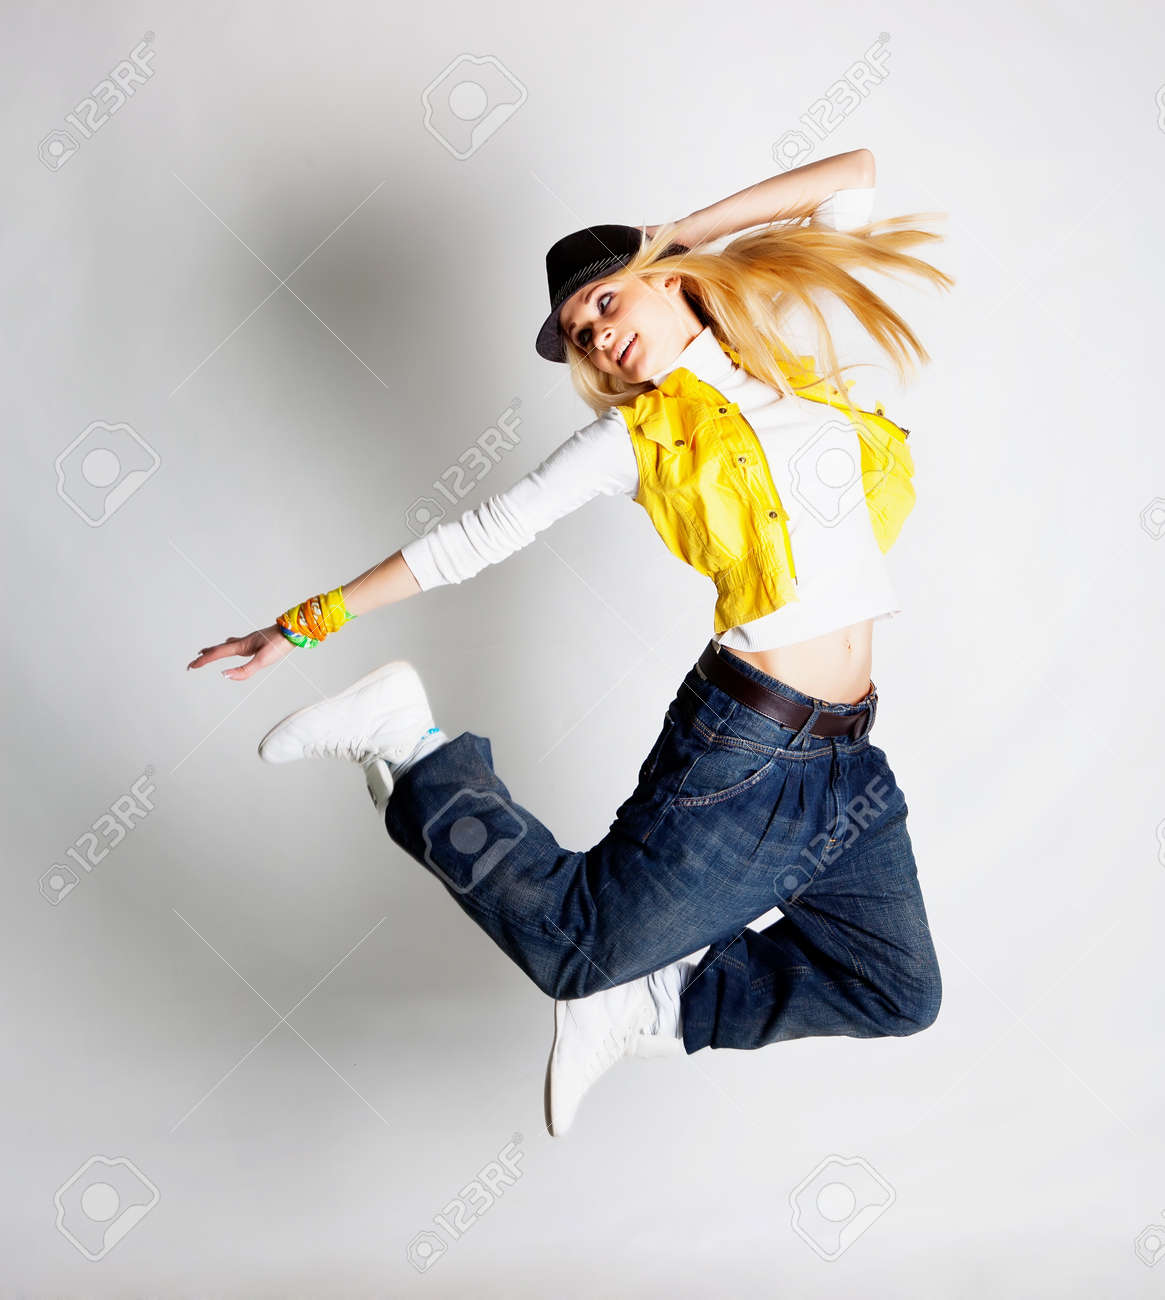 Beautiful Blond Hair Girl Dancing Hiphop Stock Photo Picture And Royalty Free Image Image 12725700